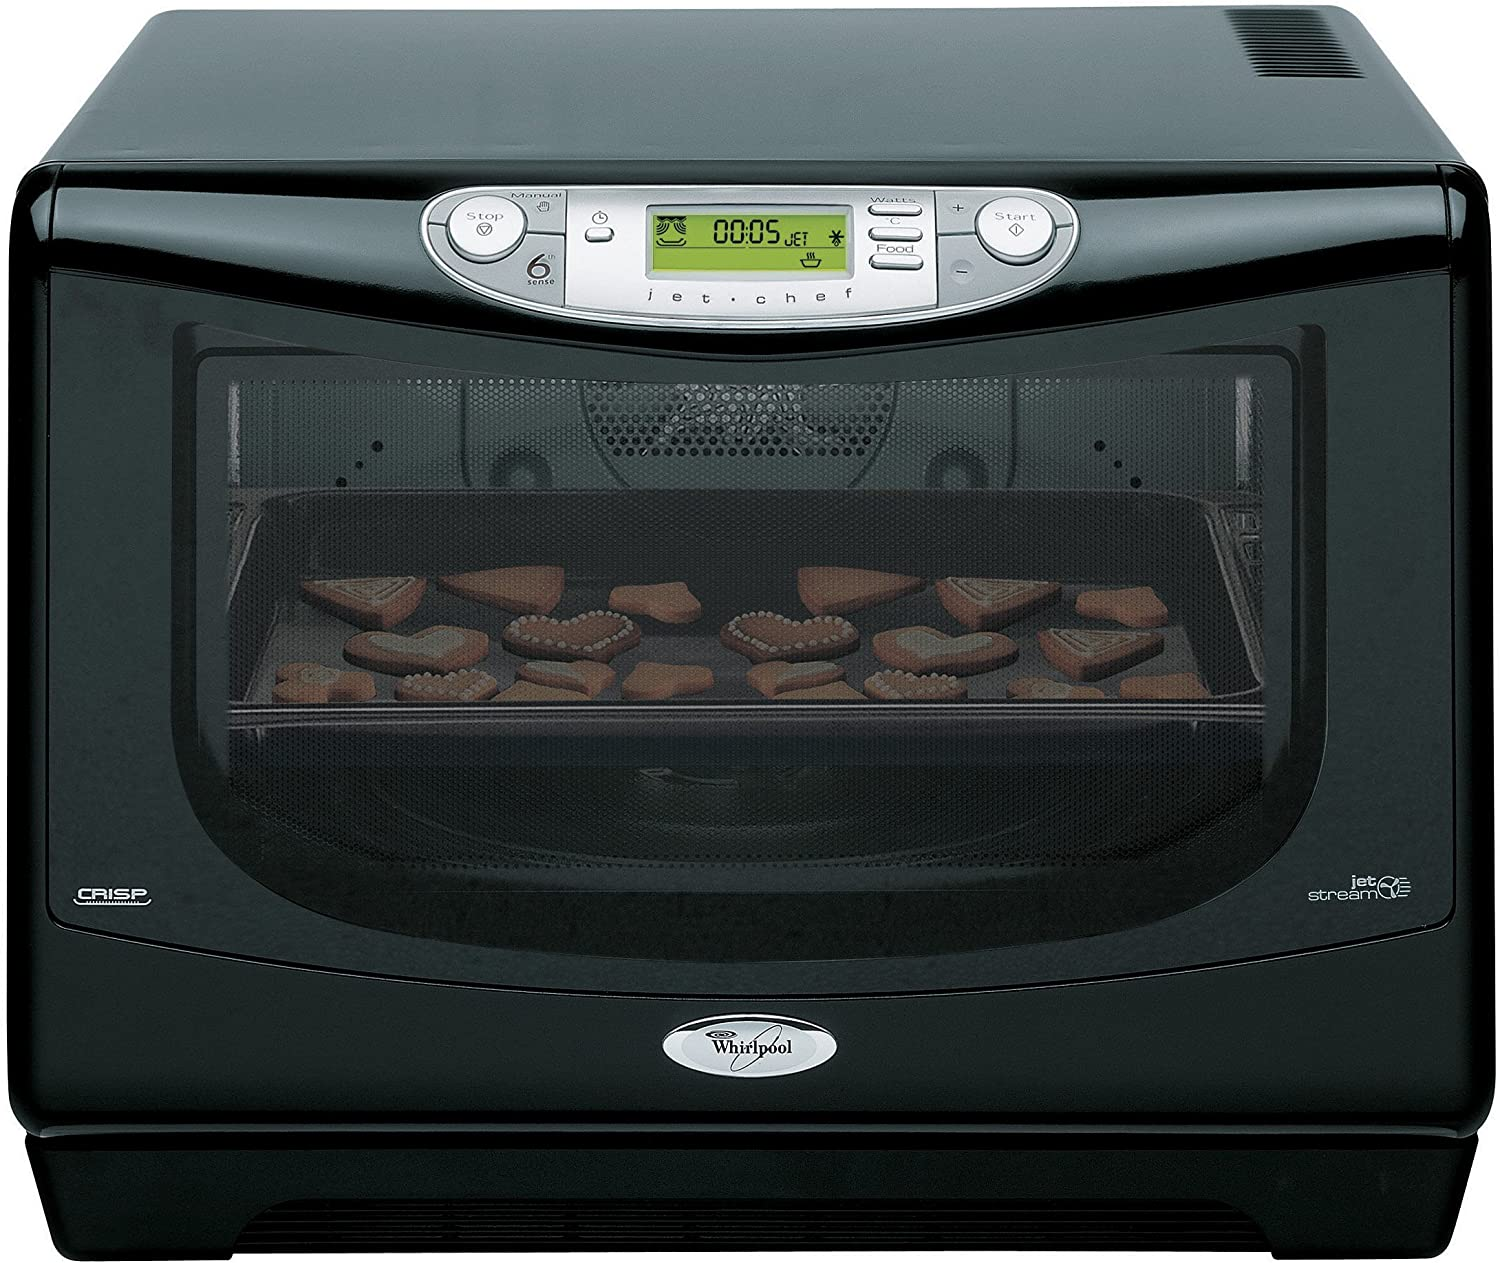 Whirlpool Jet Chef 31 Litre, Drop Down